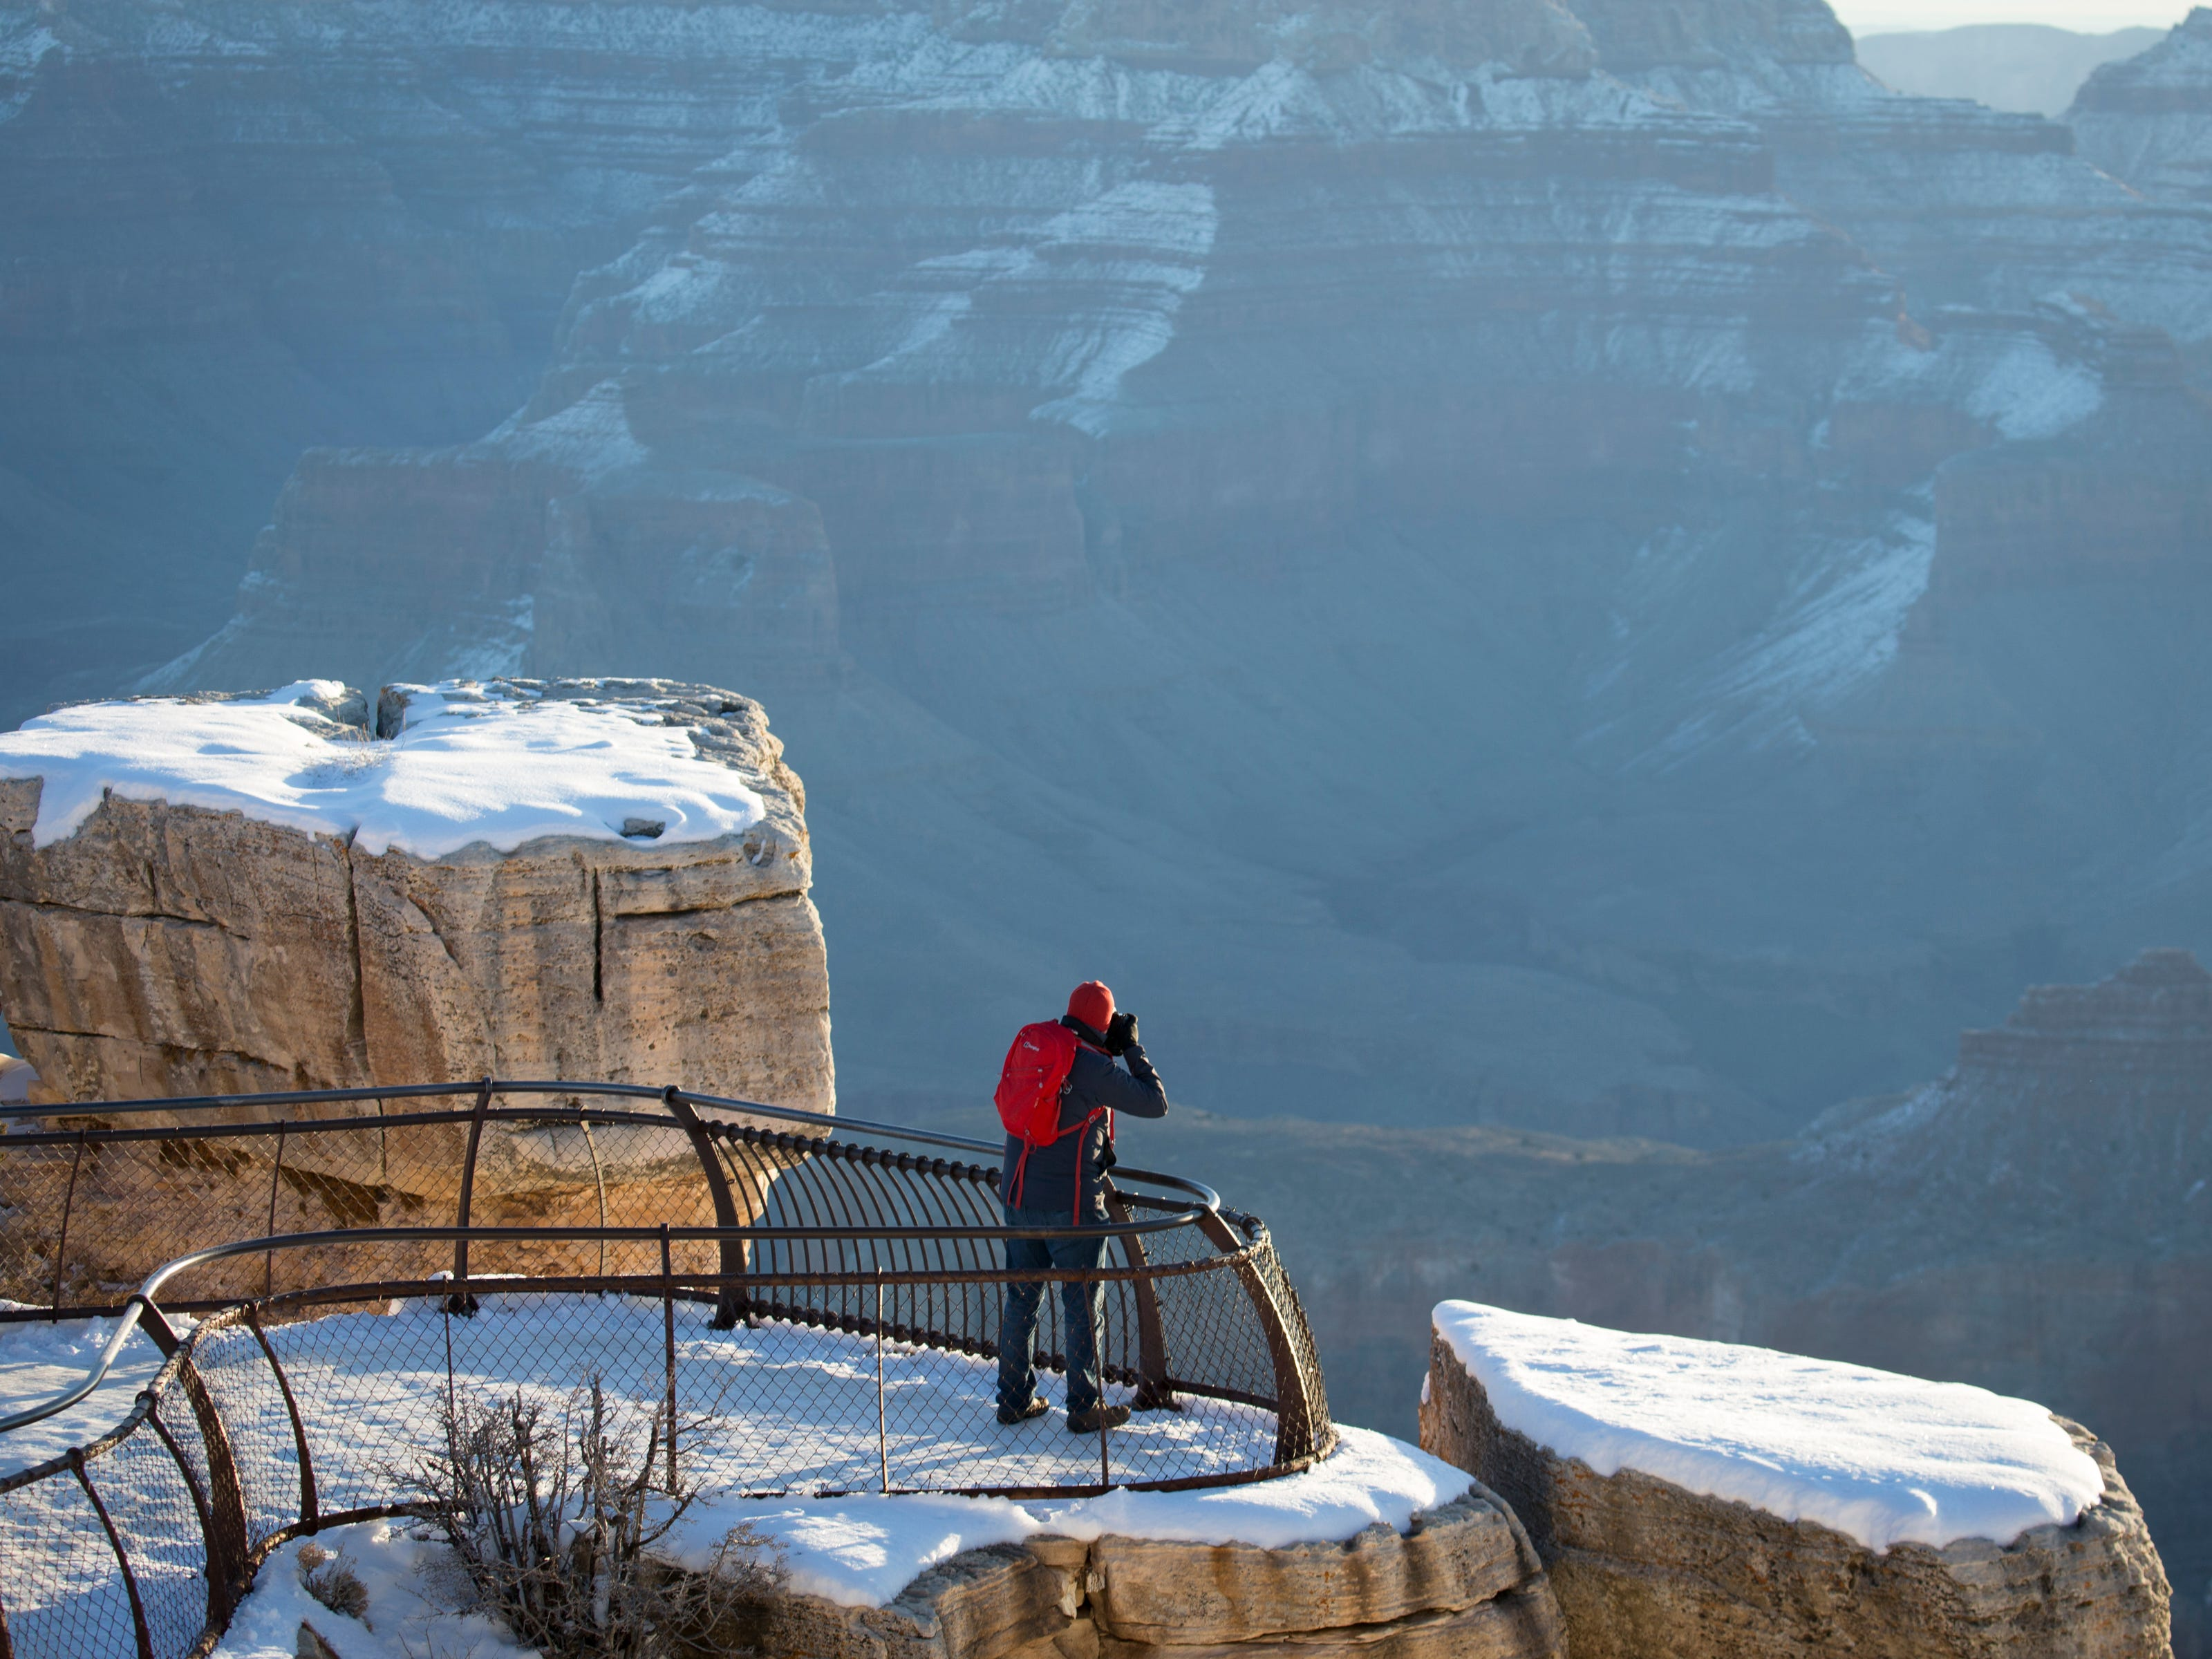 There is snow at sunrise at Mather Point at the South Rim of Grand Canyon National Park in Arizona, Feb. 20, 2019,